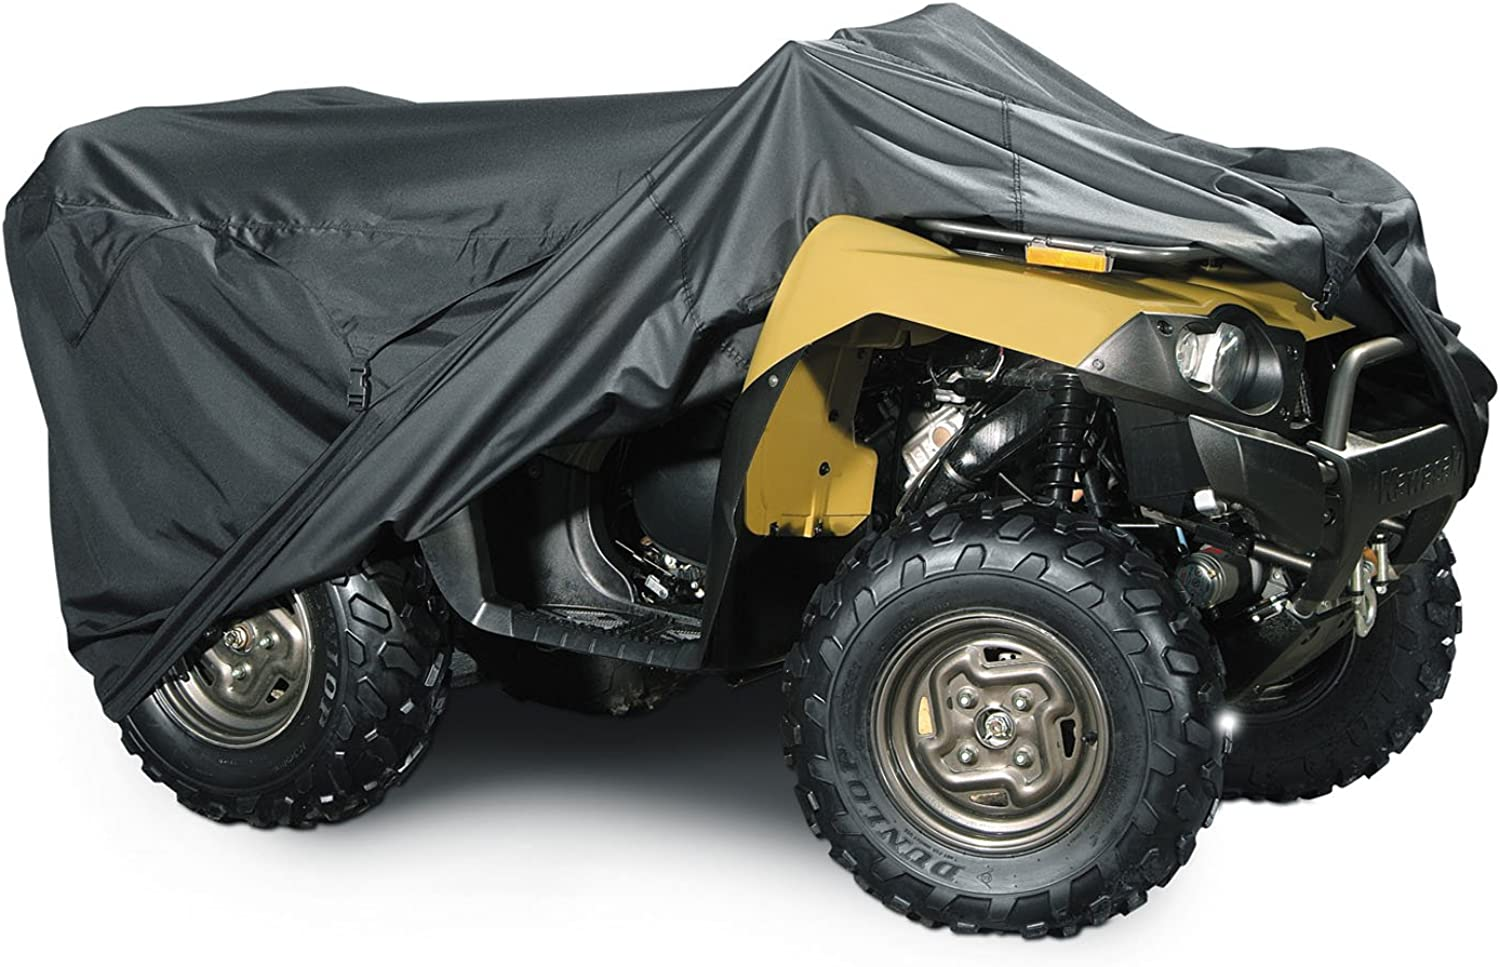 Epic EP7700 Large ATV Cover